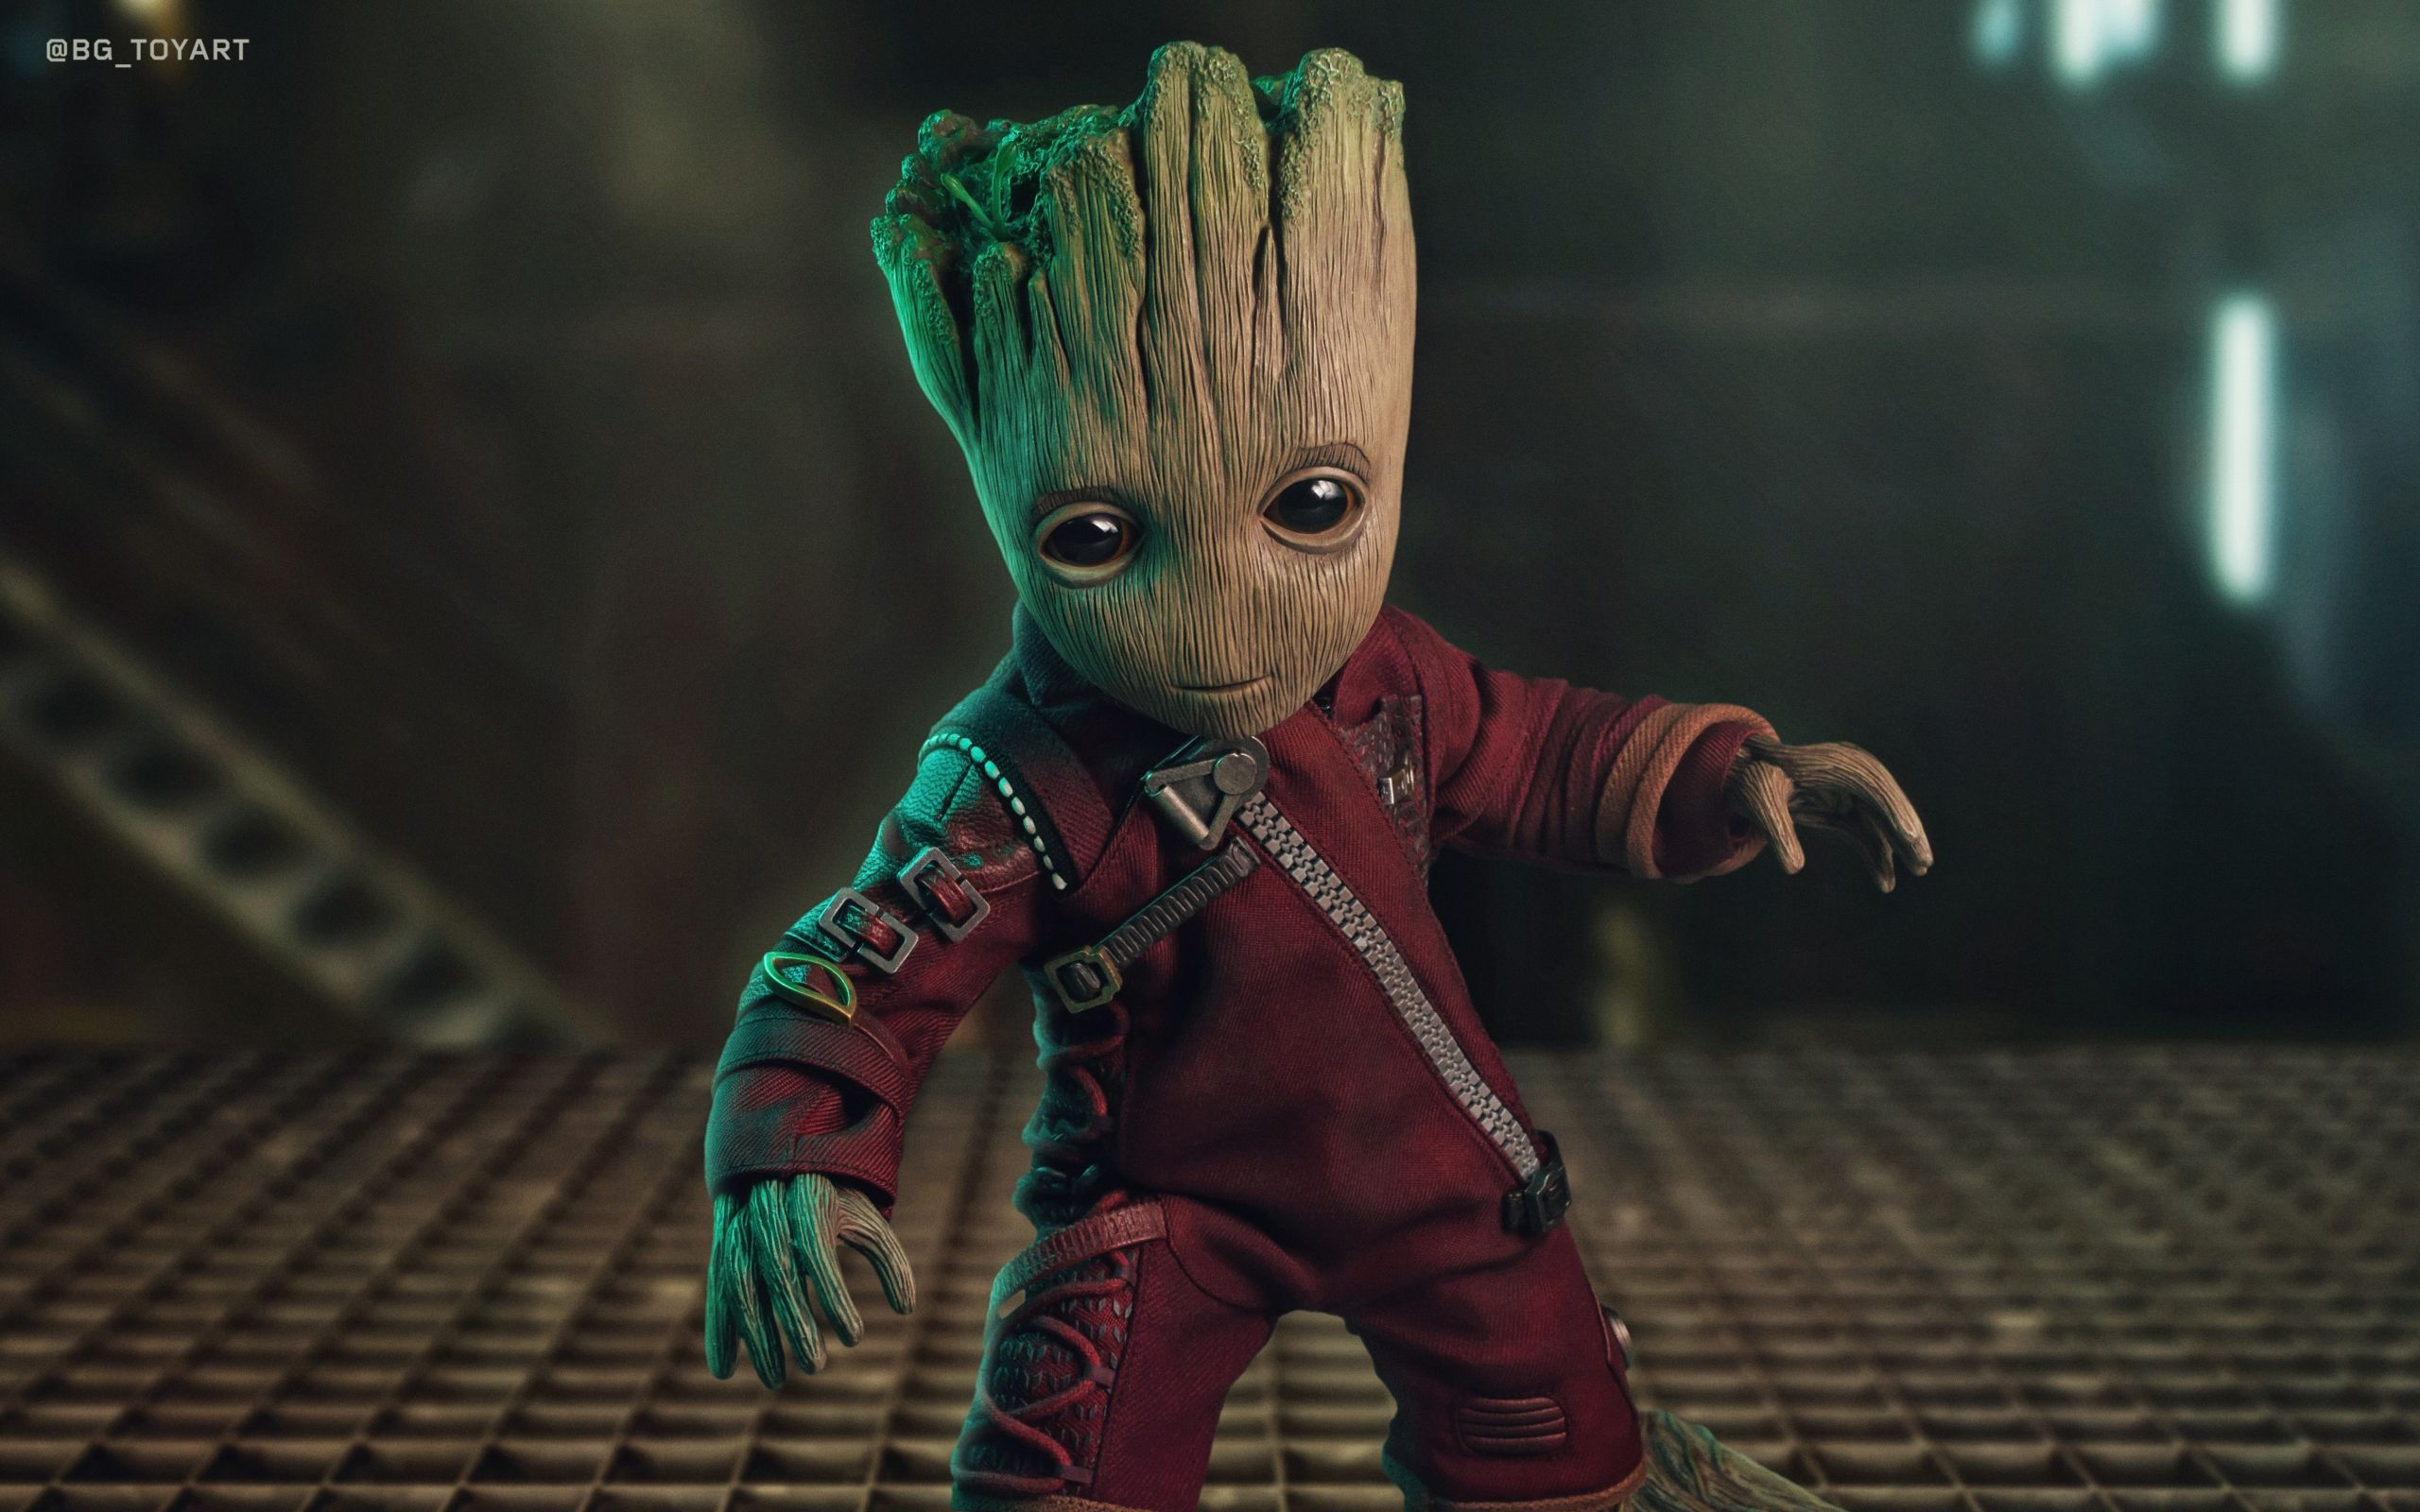 Wallpaper Of Movie Guardians Of The Galaxy Groot Baby Groot